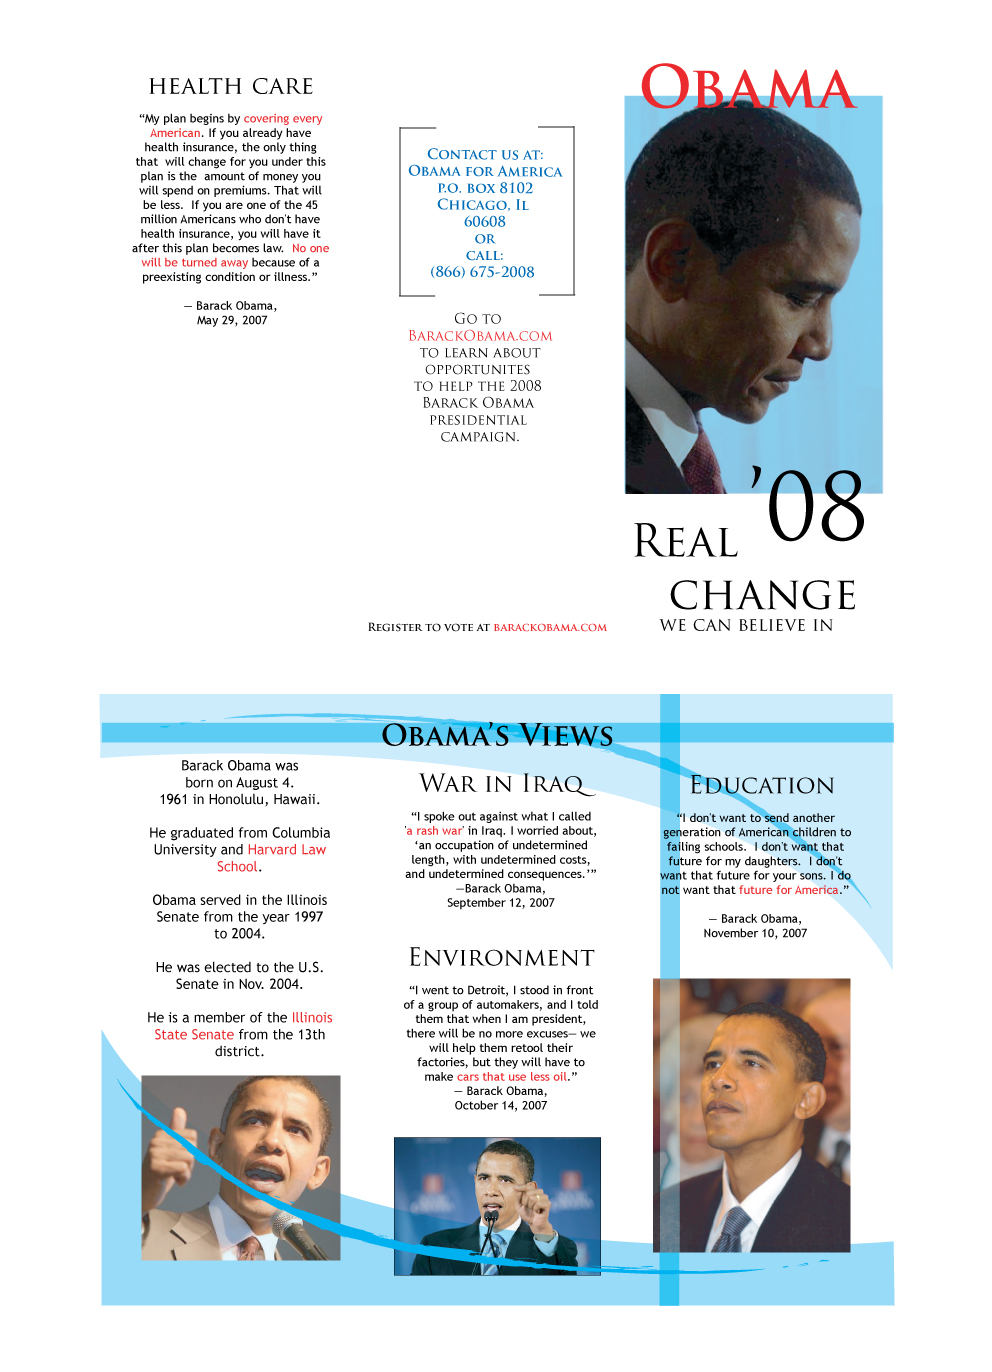 Students Learned To Create A Tri-Fold Brochure And To Maintain Consistency.  Students Researched And Created A Brochure For The Political Candidate Of  Their